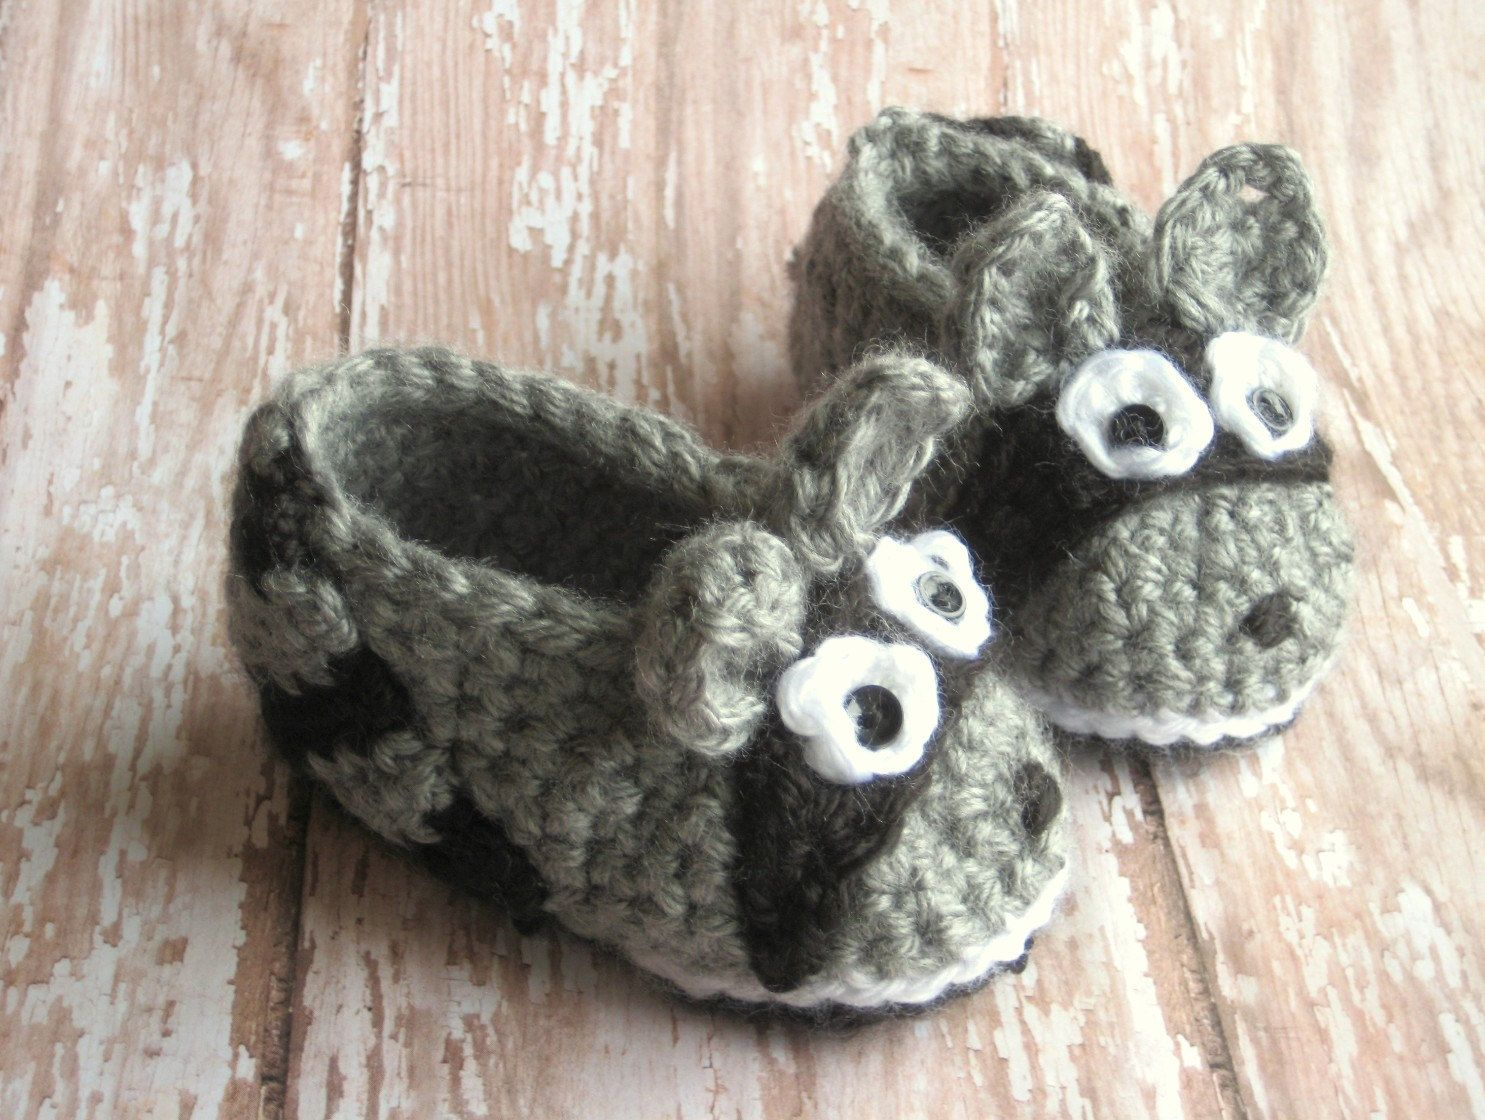 d373eac53796a Grey and Black Raccoon Shoes for Baby Boy - Crocheted booties ...